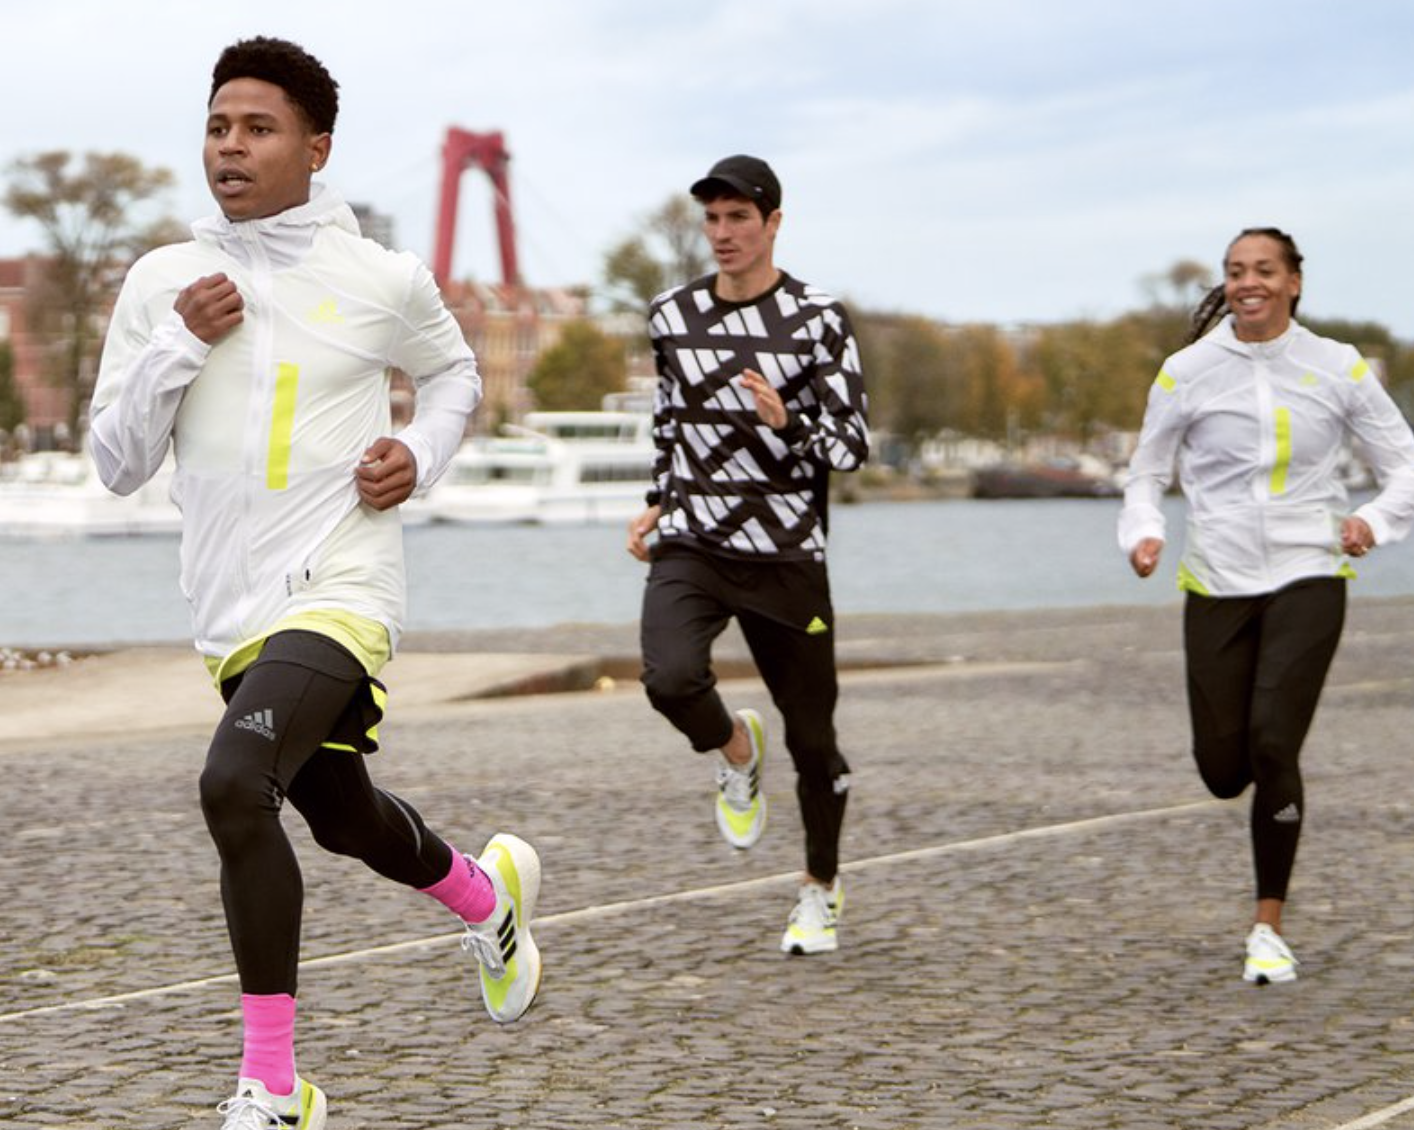 Adidas raised its full-year outlook for 2021 due to stronger than expected product demand, now expecting sales to grow at a high-teens pace, with help from an approximately 50 percent sales boost in the second quarter.